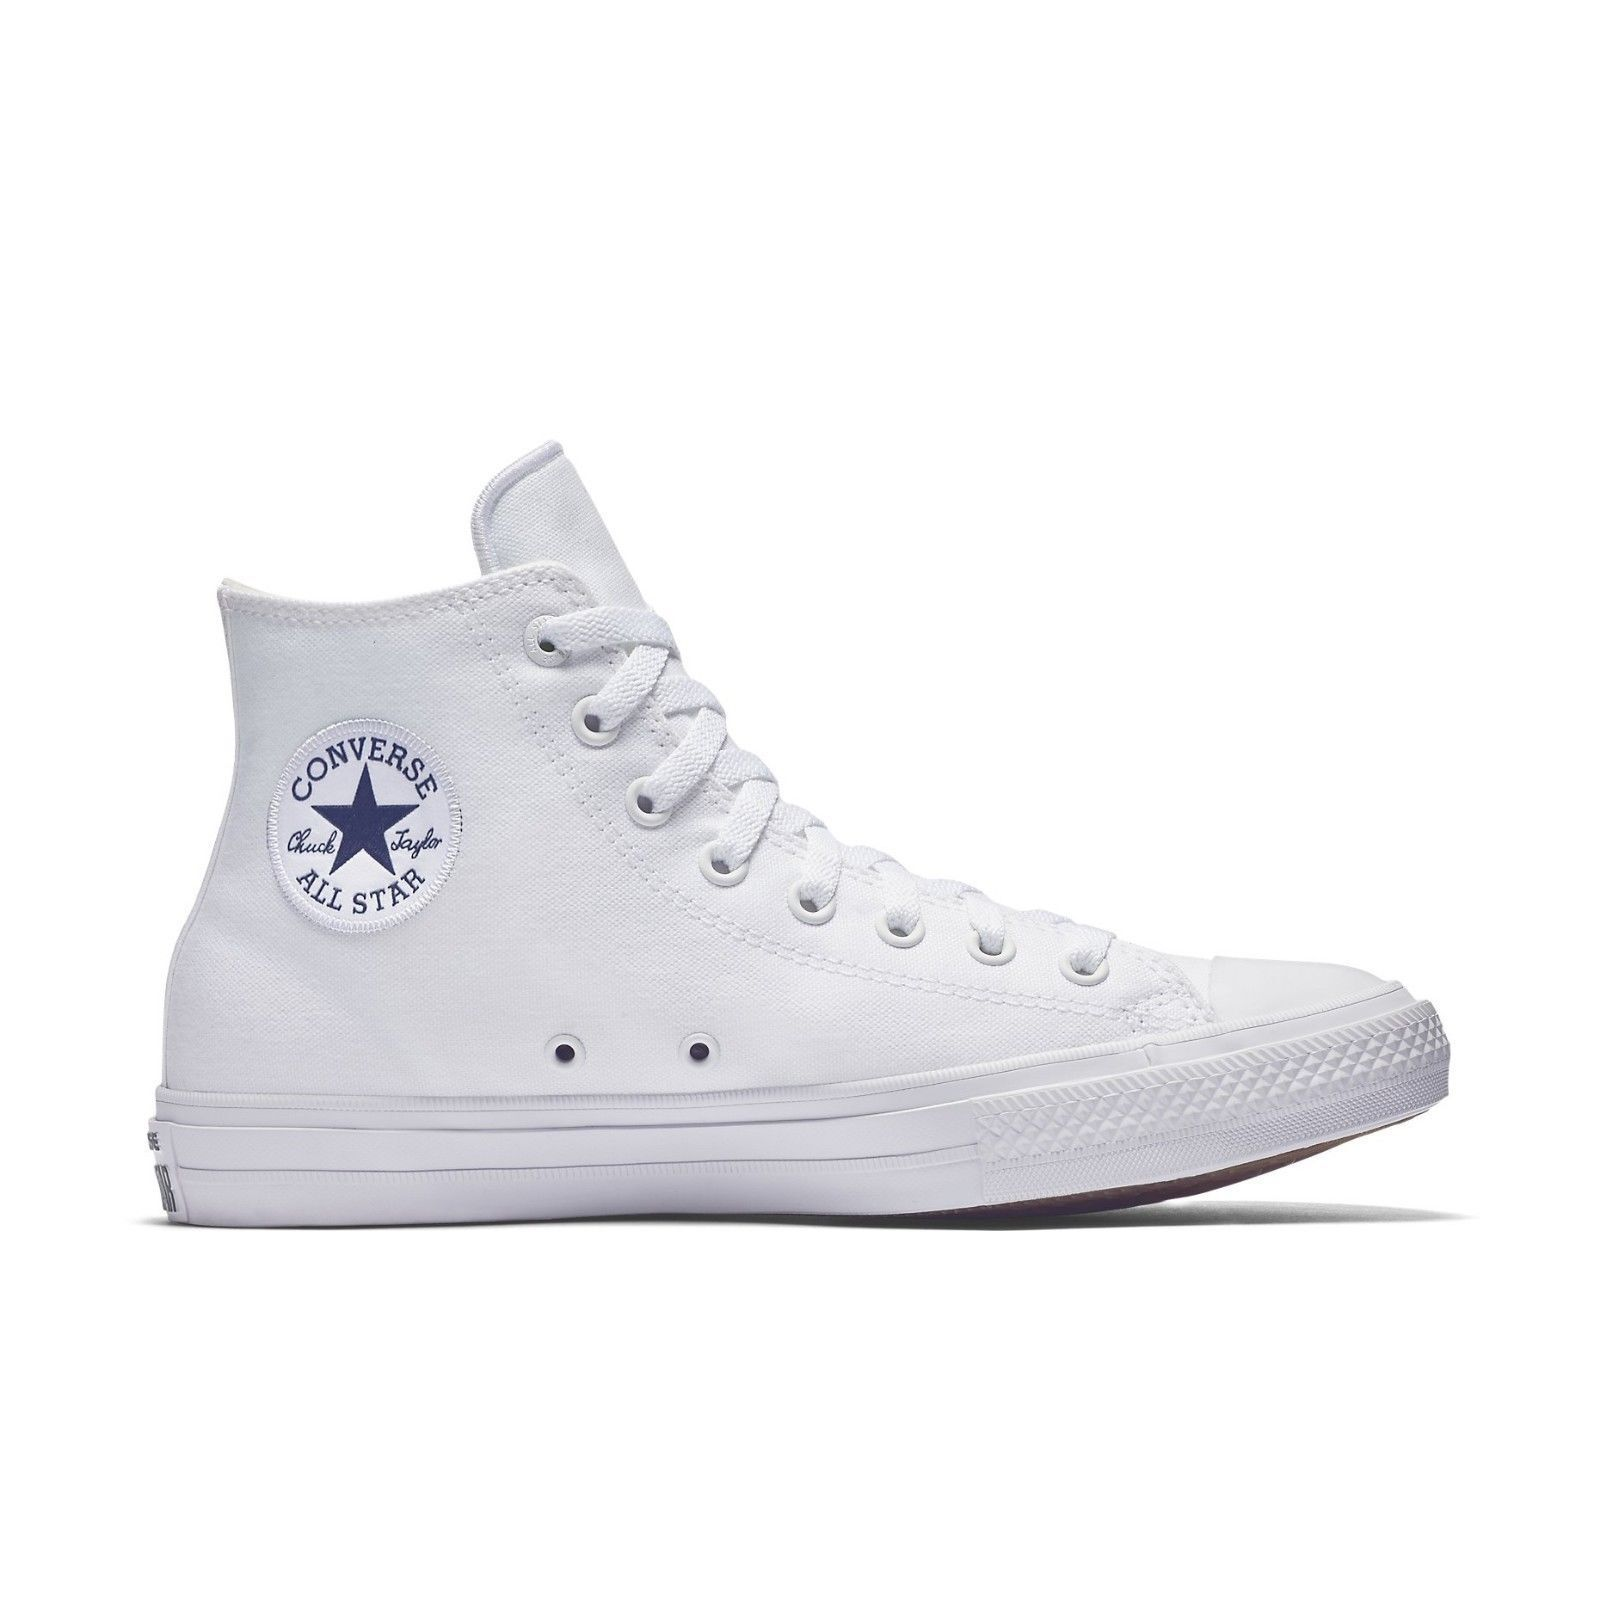 New Converse femmes Mens Chuck Taylor All Star II HI Trainers blanc 150148C UK 3